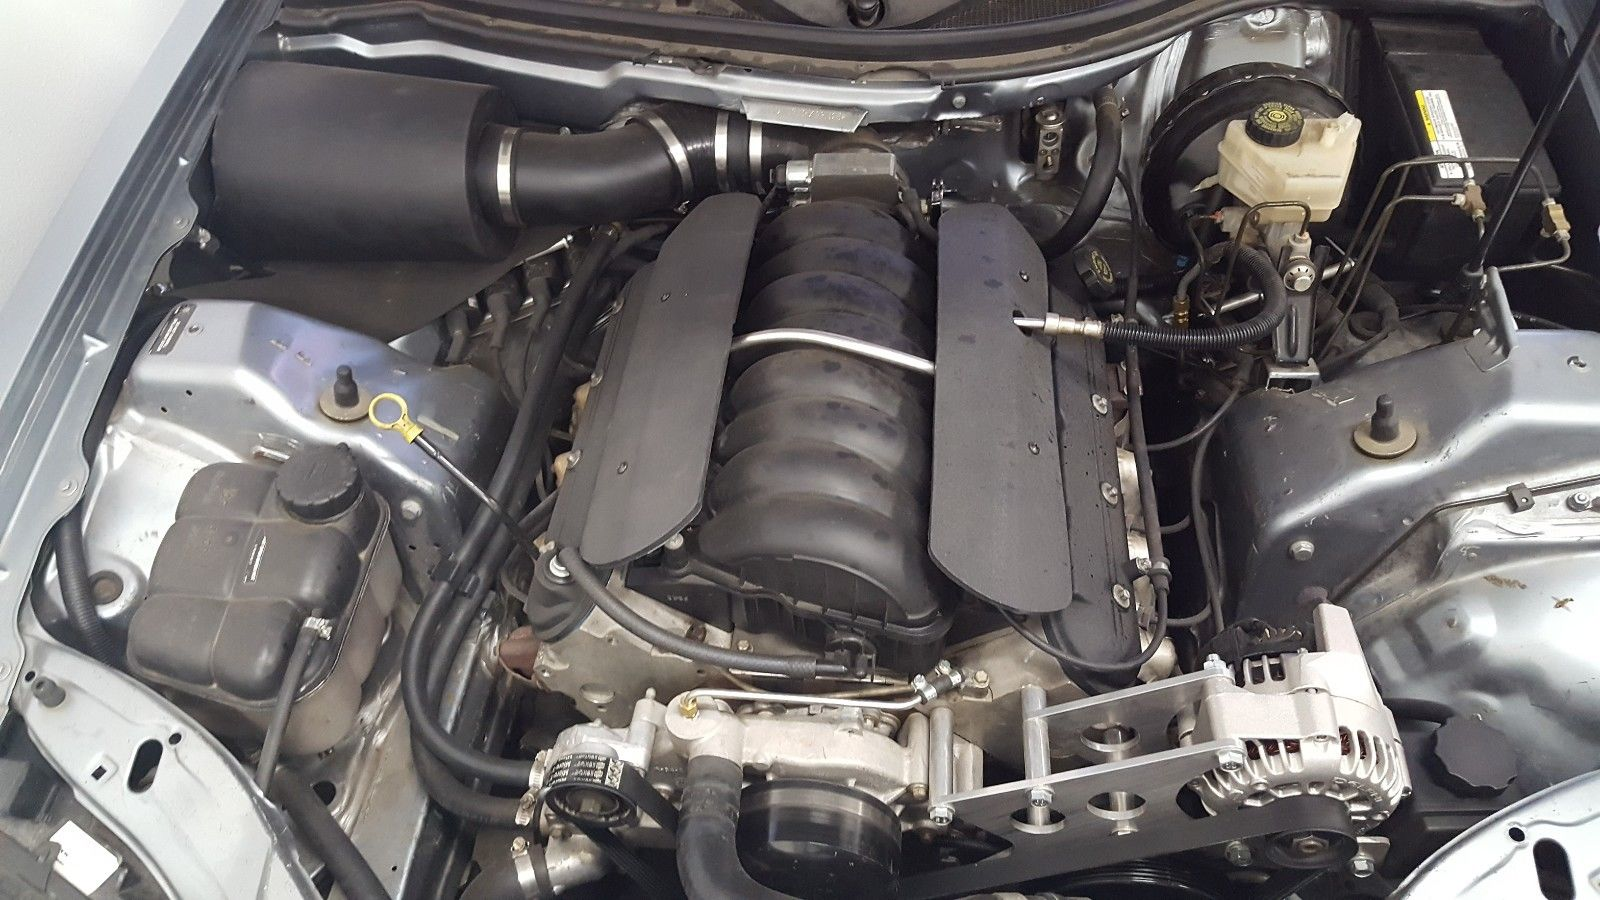 For Sale: 2004 Chrysler Crossfire with a 5 3 L LSx V8